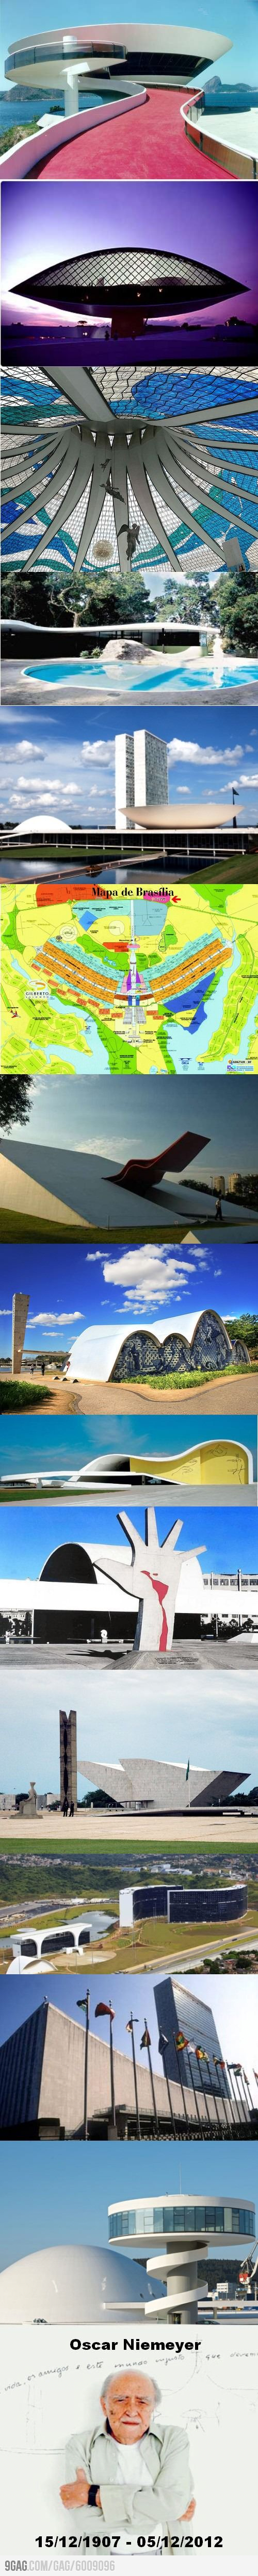 1000+ images about rchitettura on Pinterest Santiago calatrava ... - ^